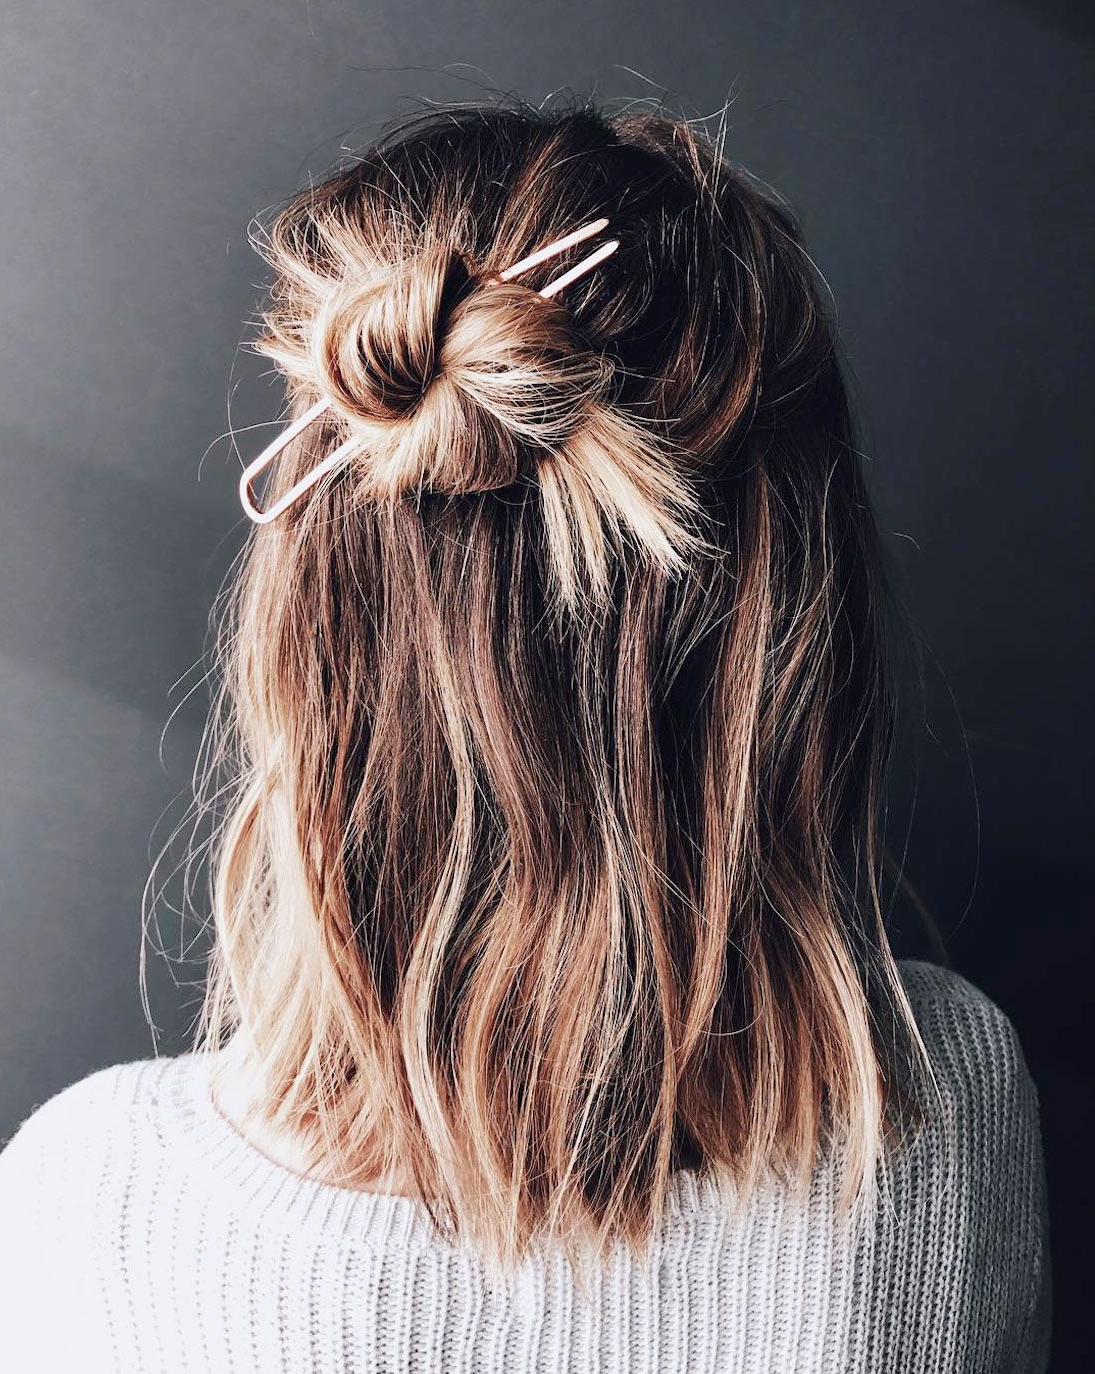 16 Half Bun Hairstyles For 2019 – How To Do A Half Bun Tutorial Intended For Newest Topknot Hairstyles With Mini Braid (View 9 of 20)